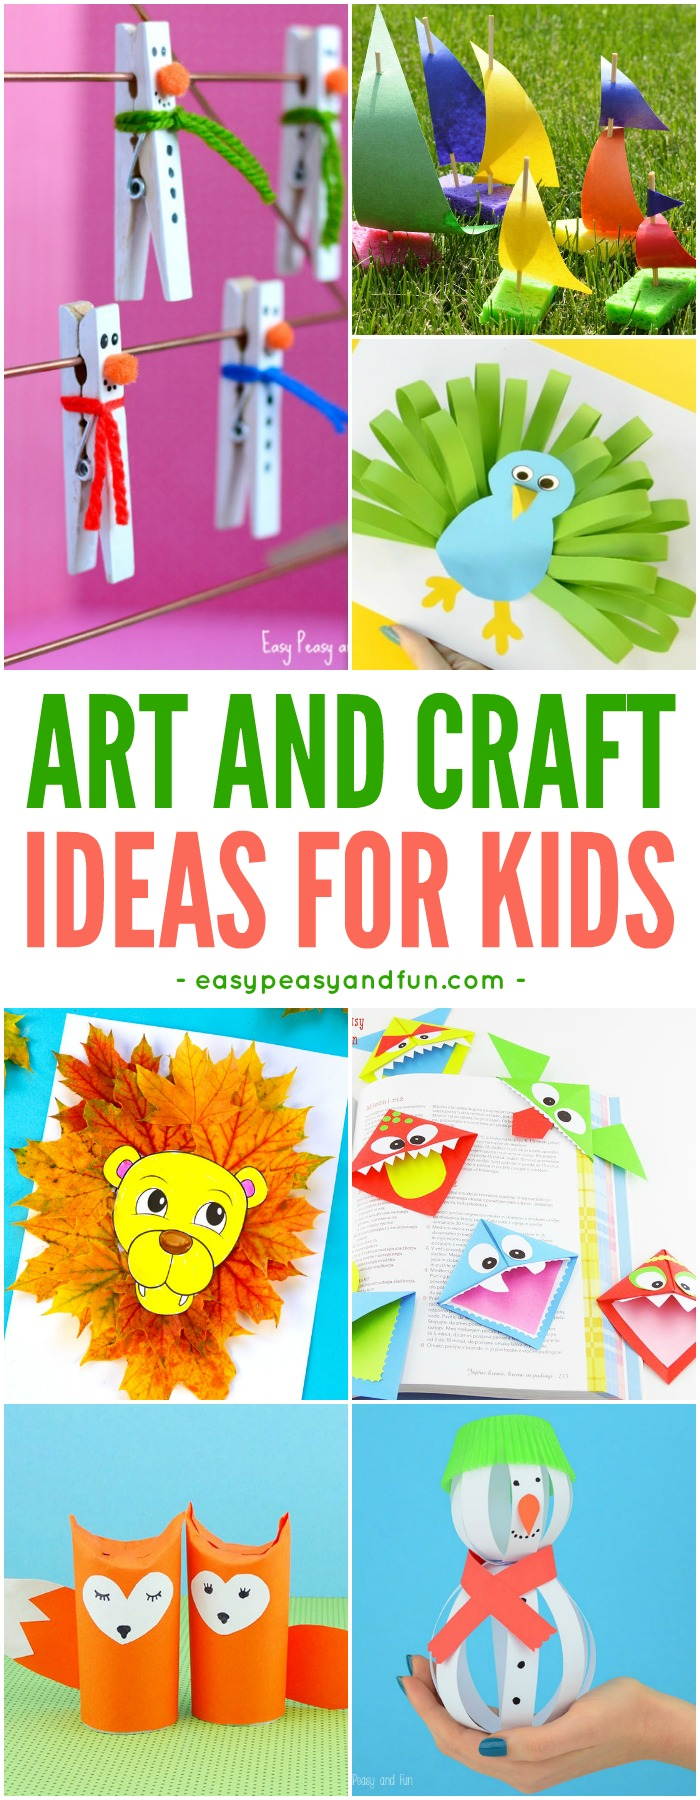 Tons Of Art And Craft Ideas For Kids To Make